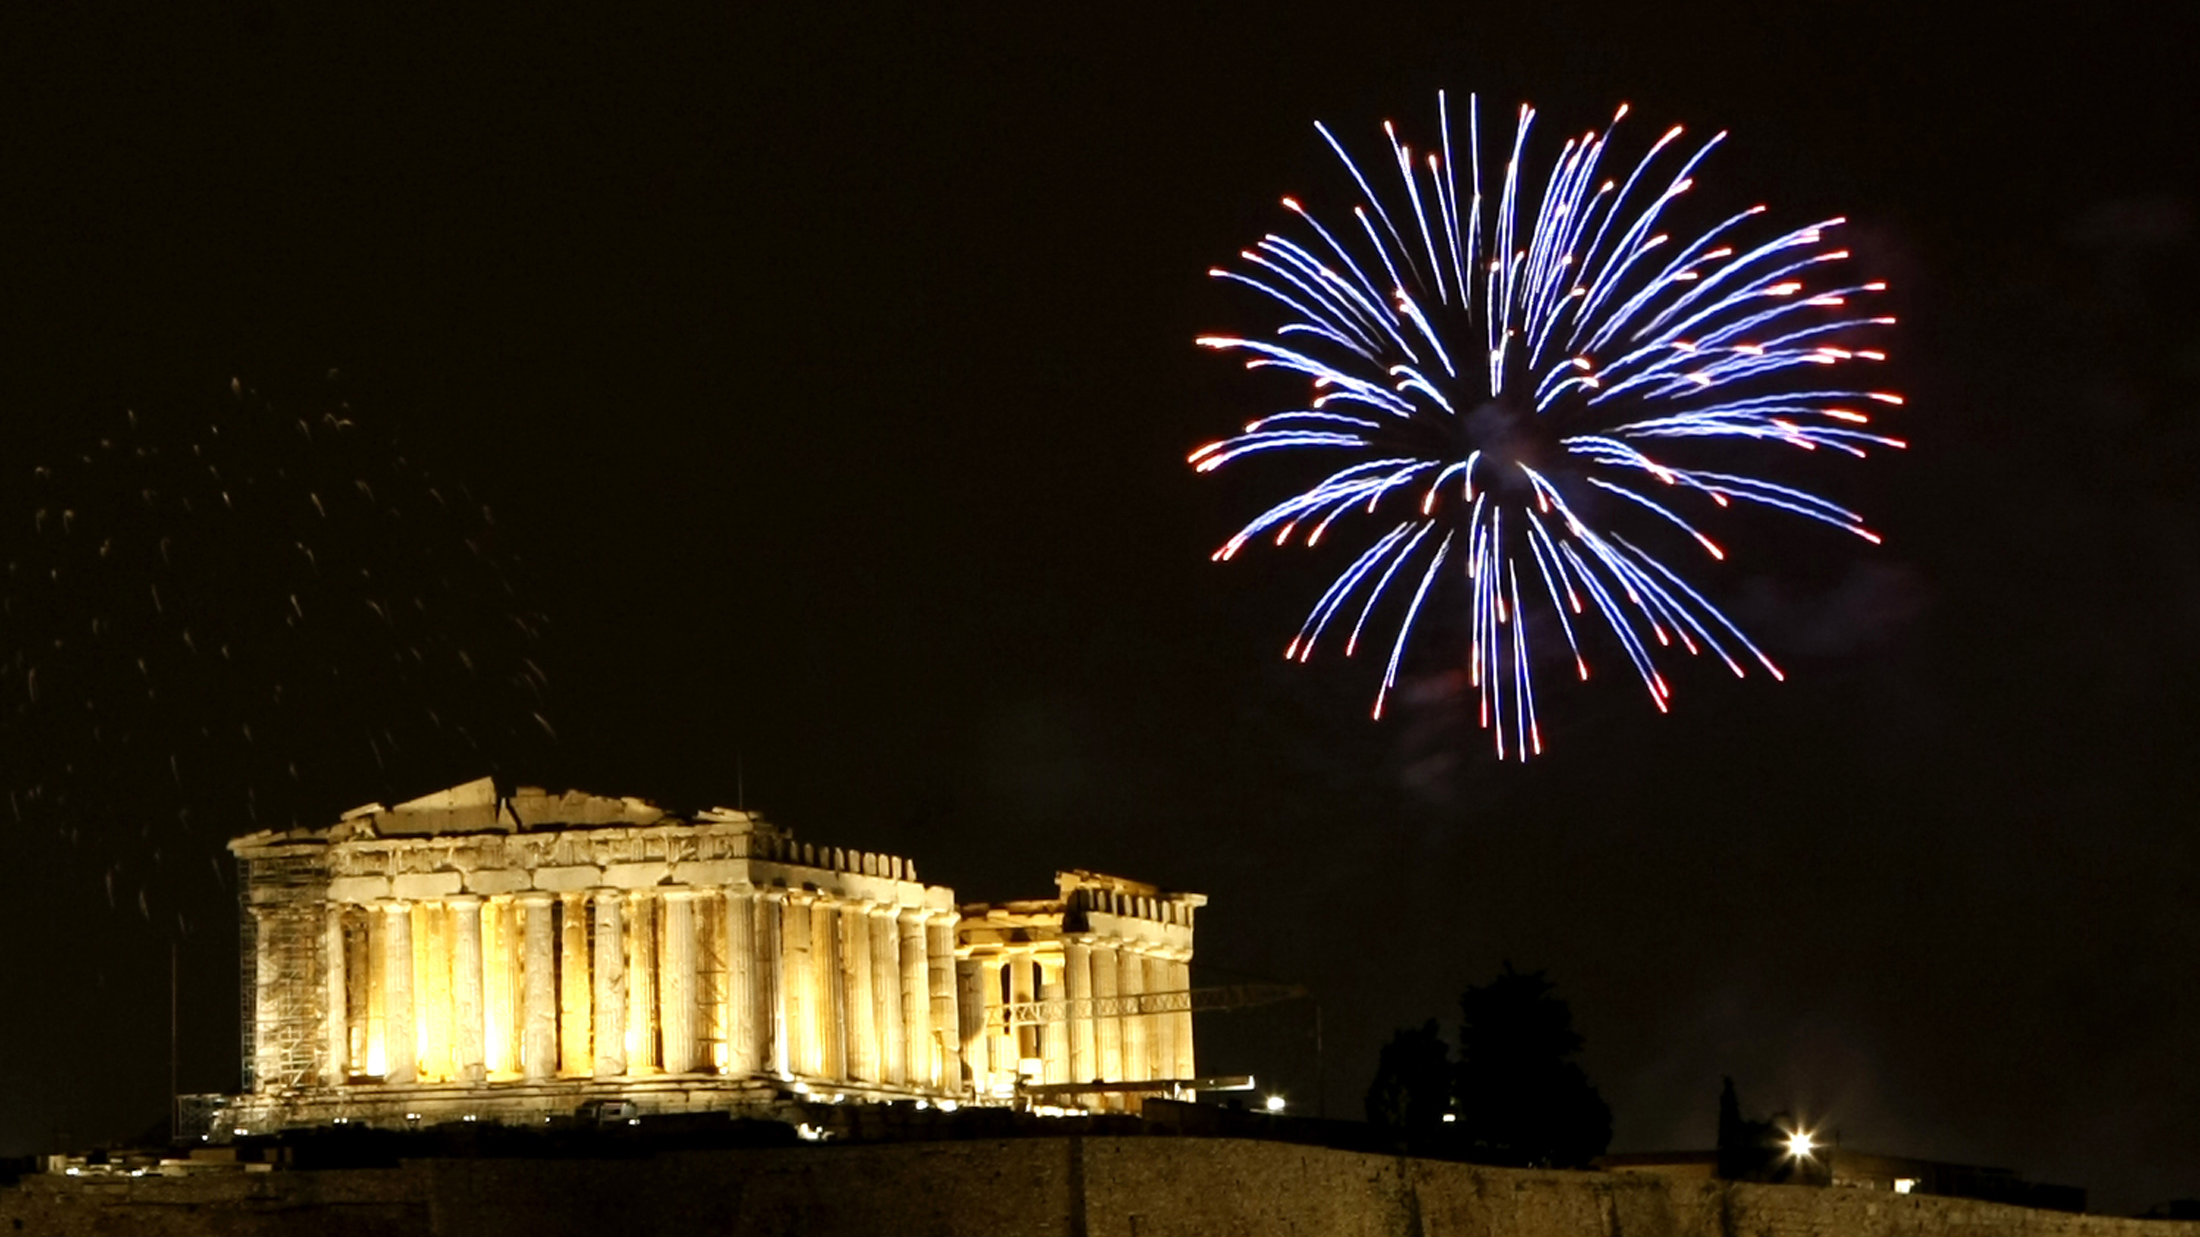 Fireworks explode over the temple of the Parthenon atop the hill of the Acropolis.